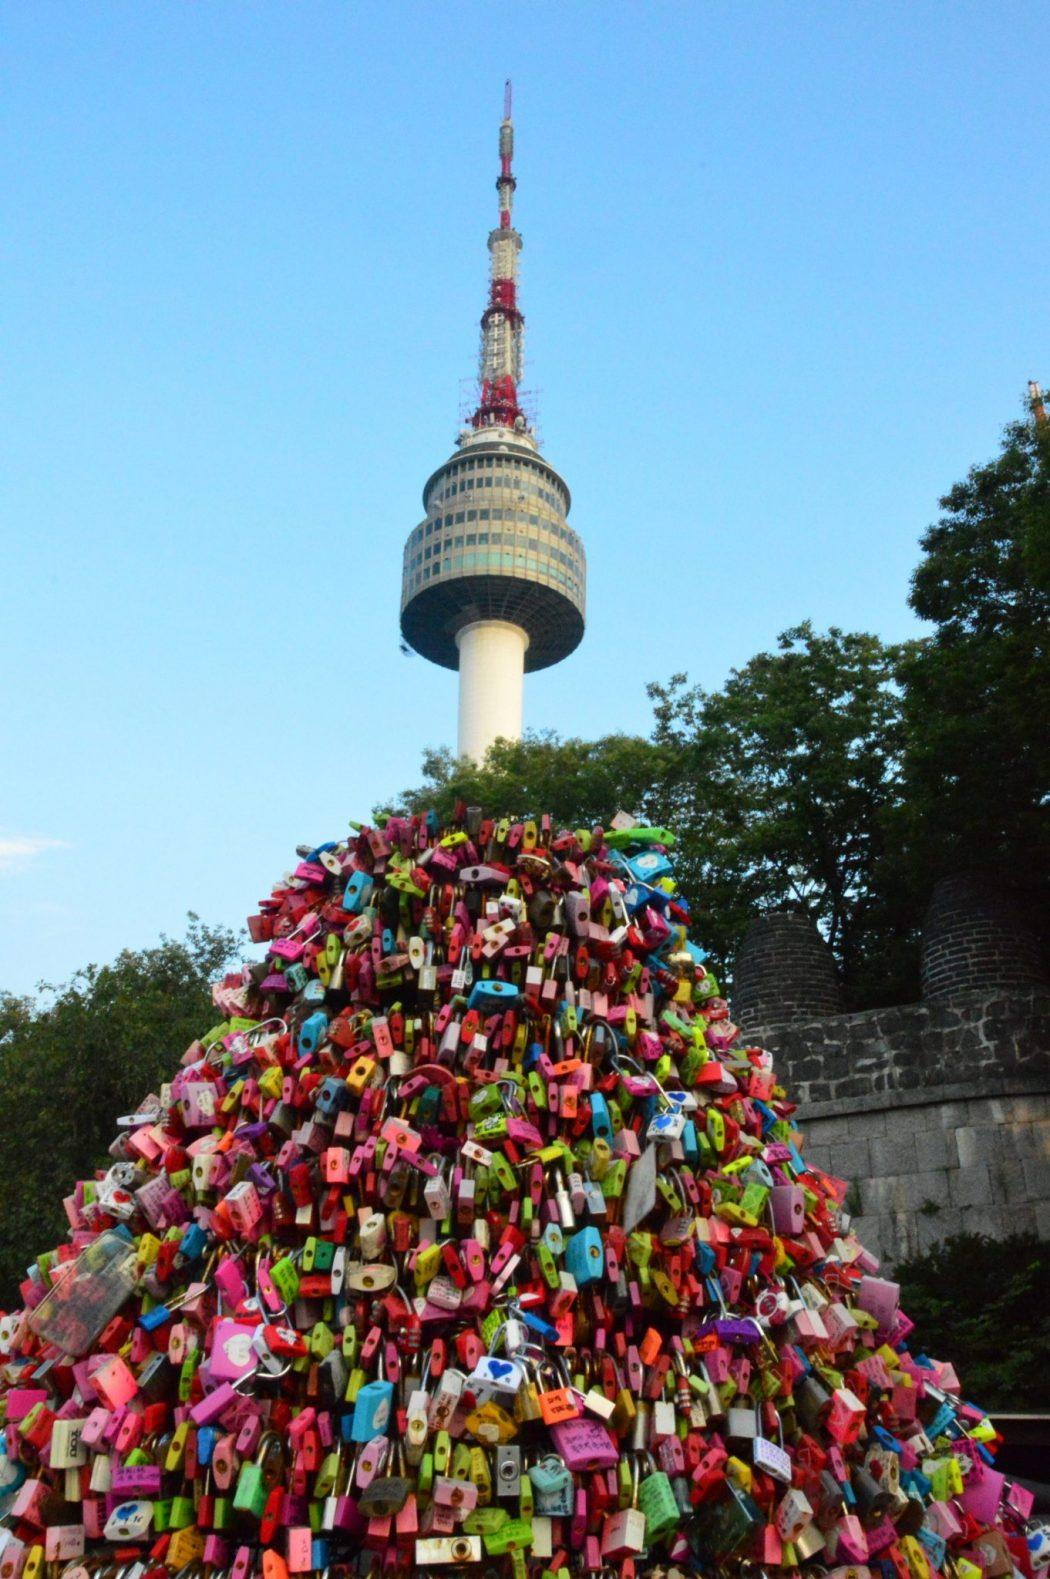 seoul tower with a stack of locks underneath it